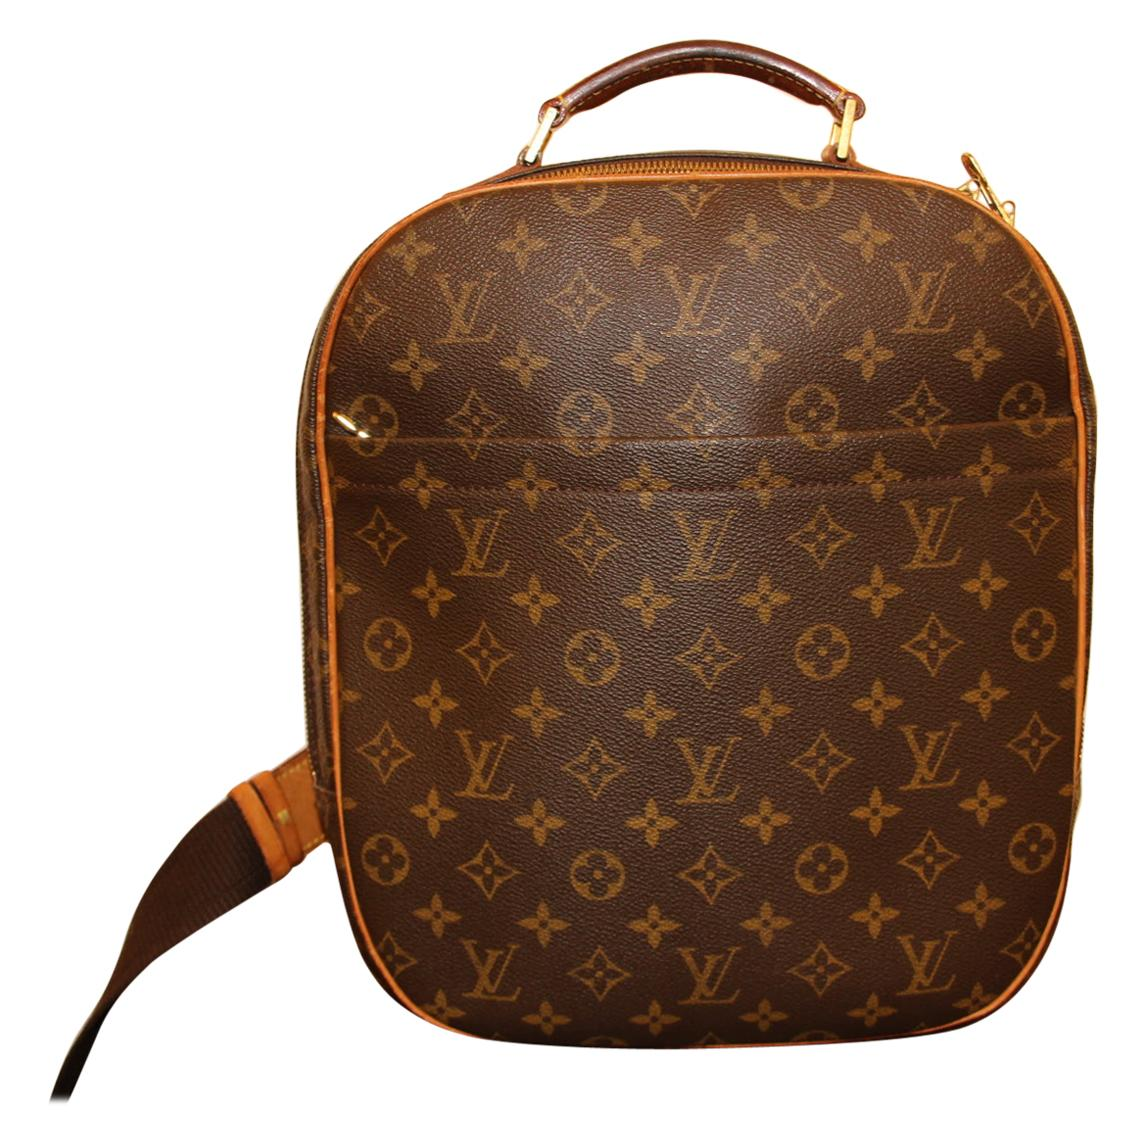 Louis Vuitton Backpack Monogramm Bag,Louis Vuitton Cross Body Bag, Louis Vuitton